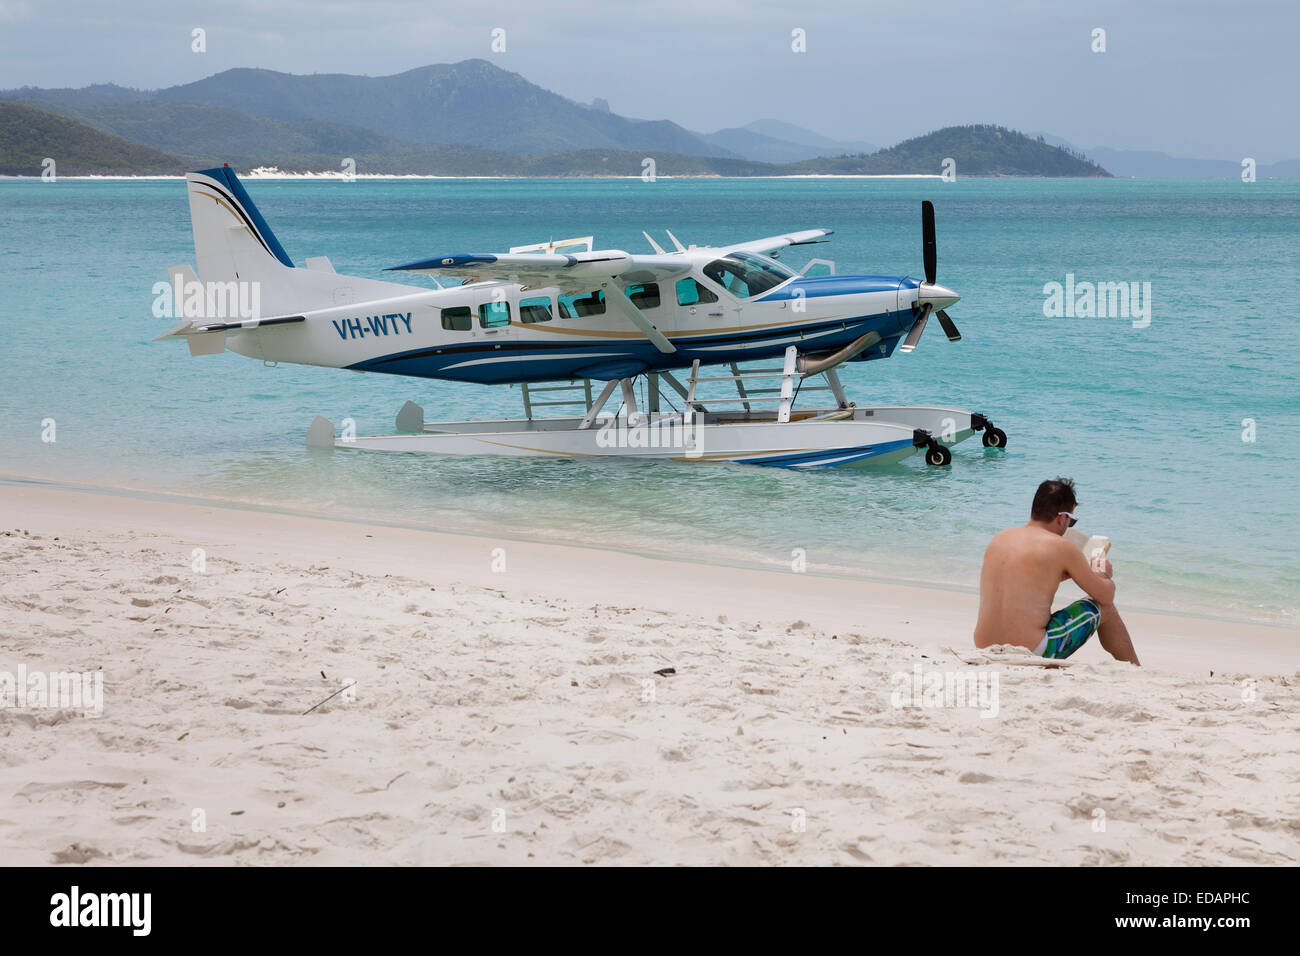 Seaplane at Whitehaven Beach,Queensland, Australia - Stock Image